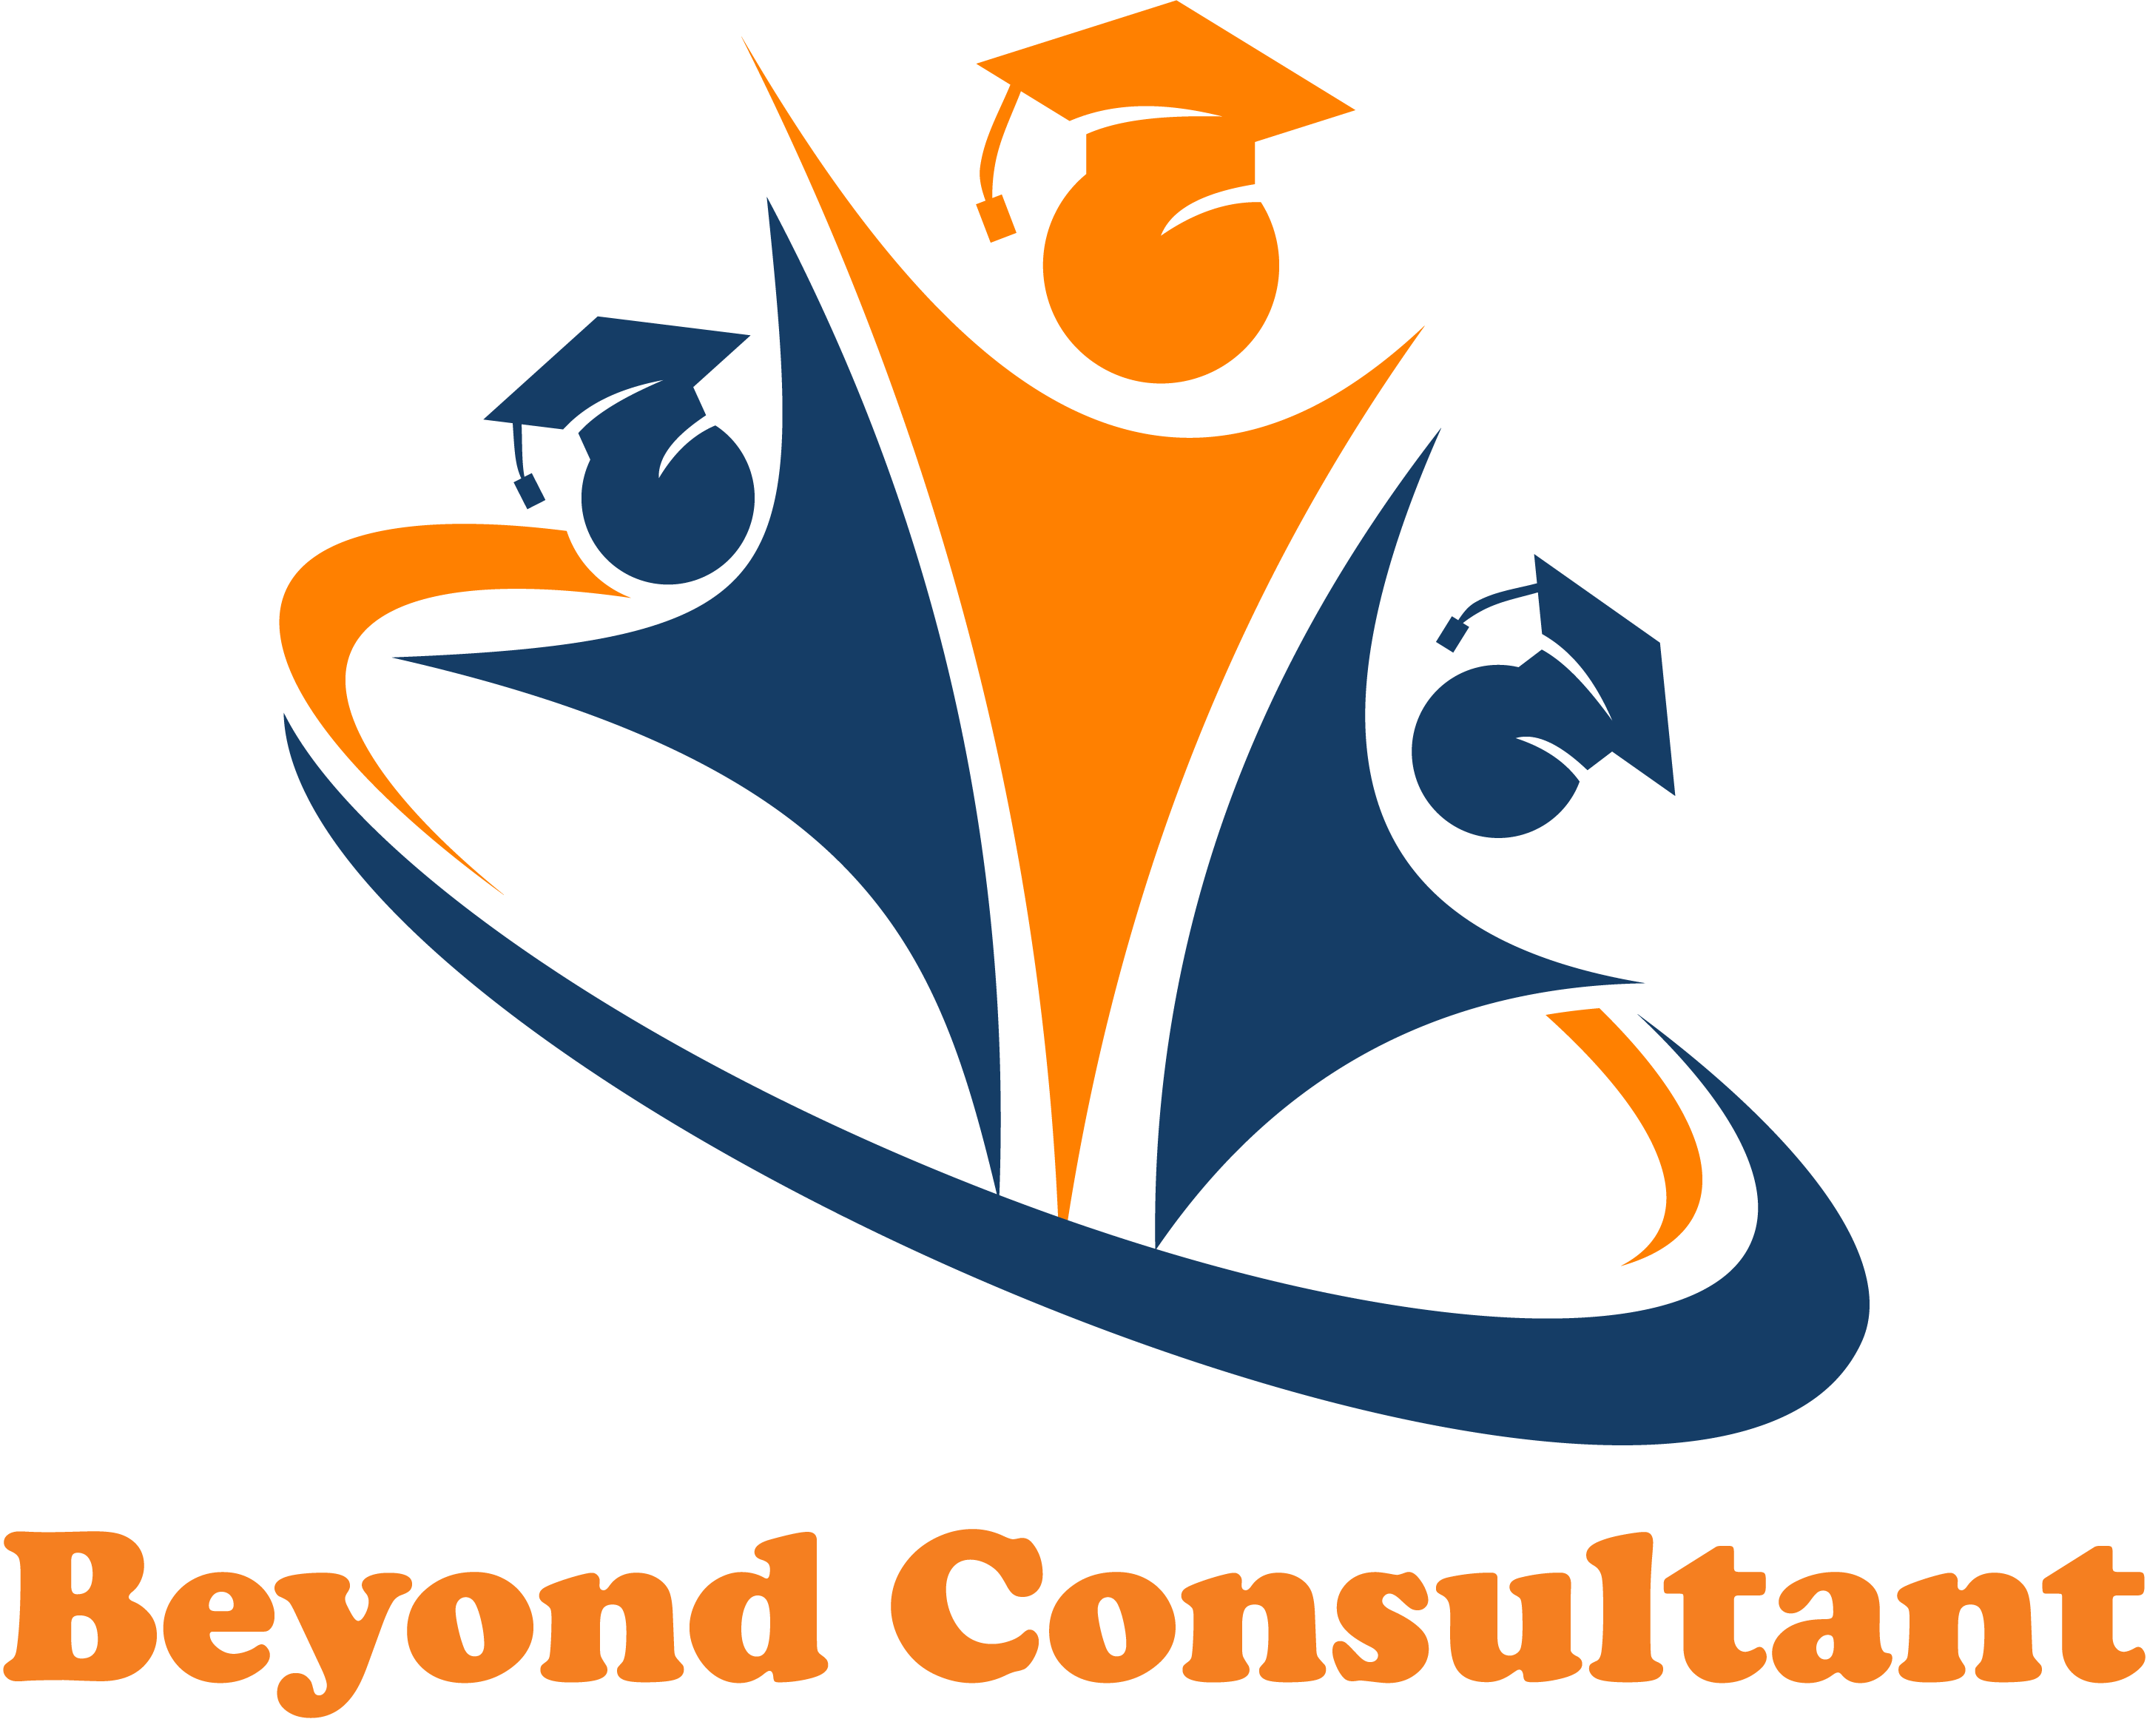 Beyond Consultant